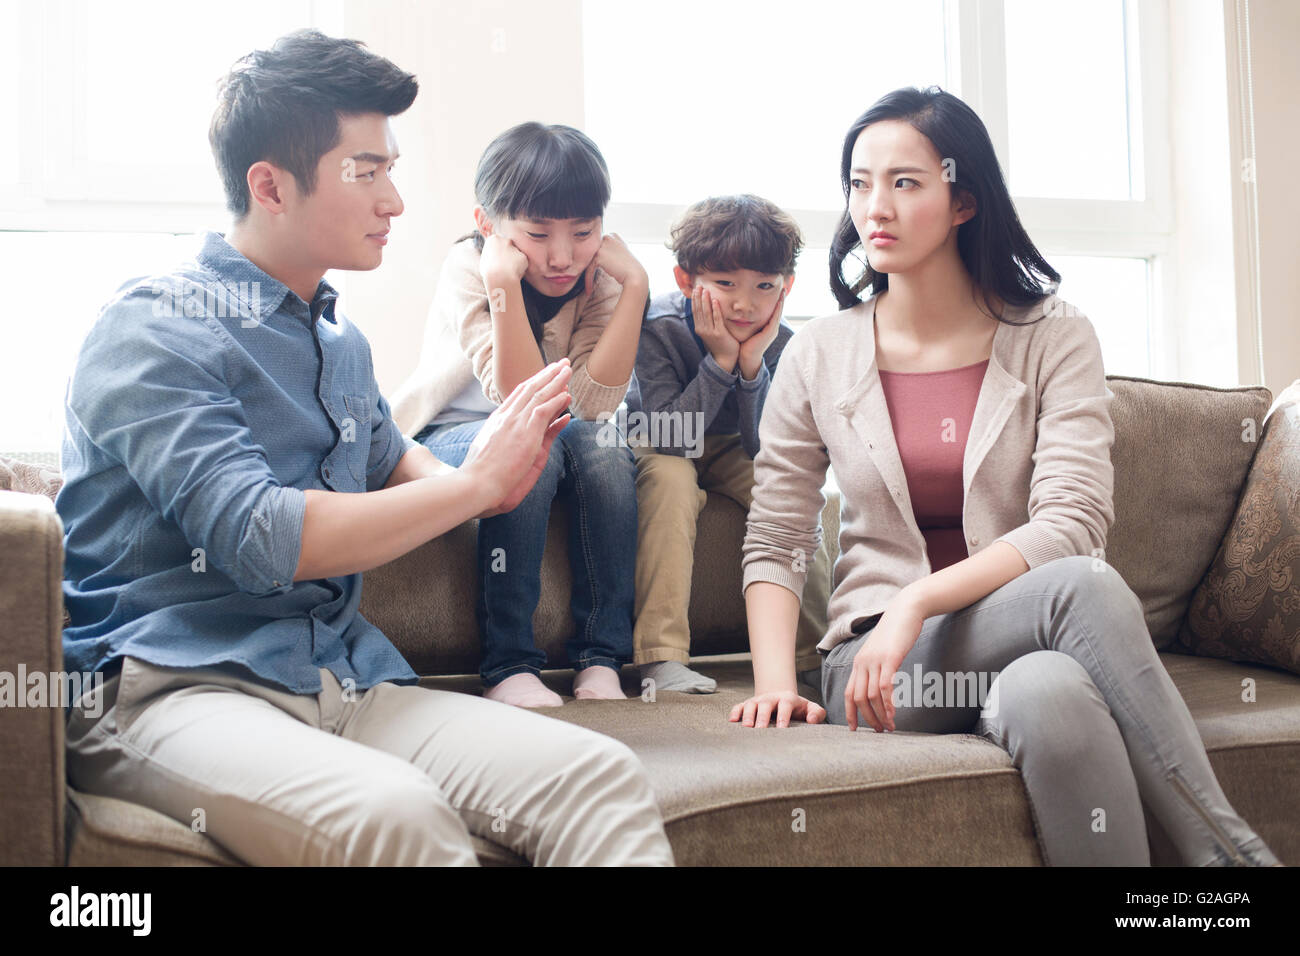 Two children listening to their parents arguing - Stock Image